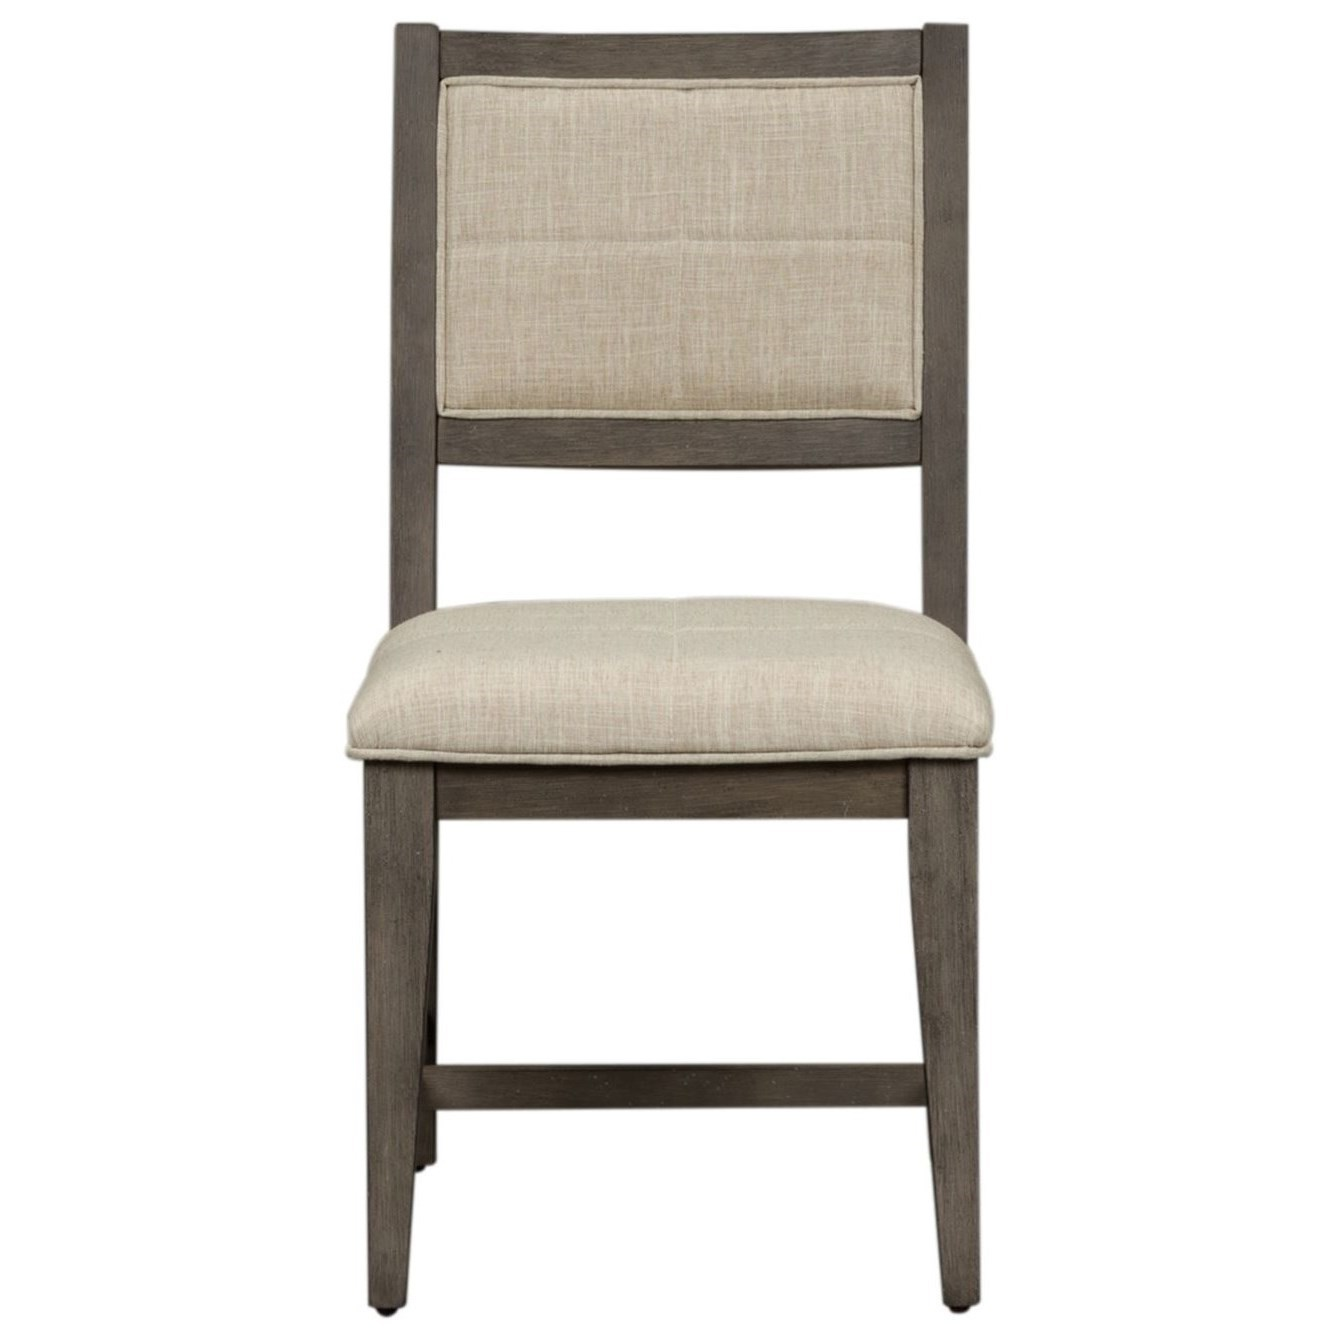 Crescent Creek Upholstered Side Chair (RTA) by Liberty Furniture at Northeast Factory Direct